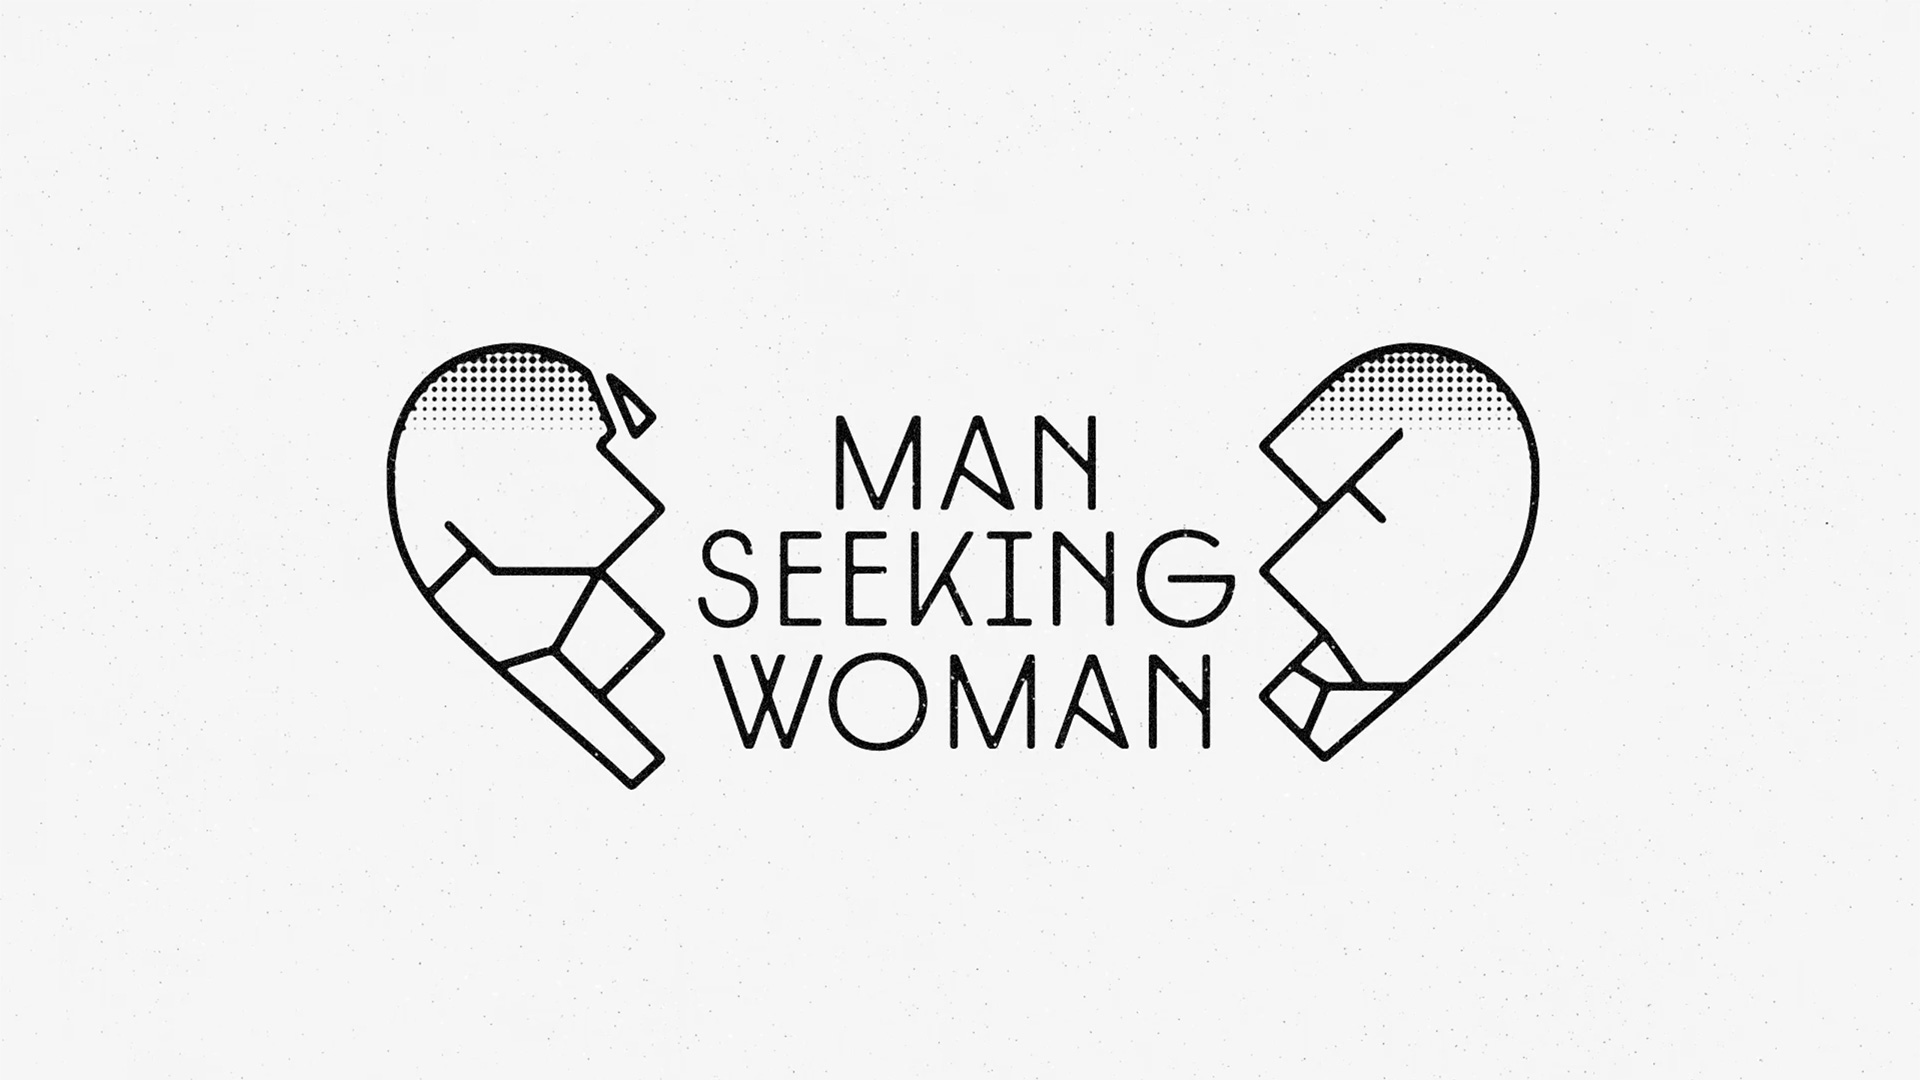 Man seeking women list